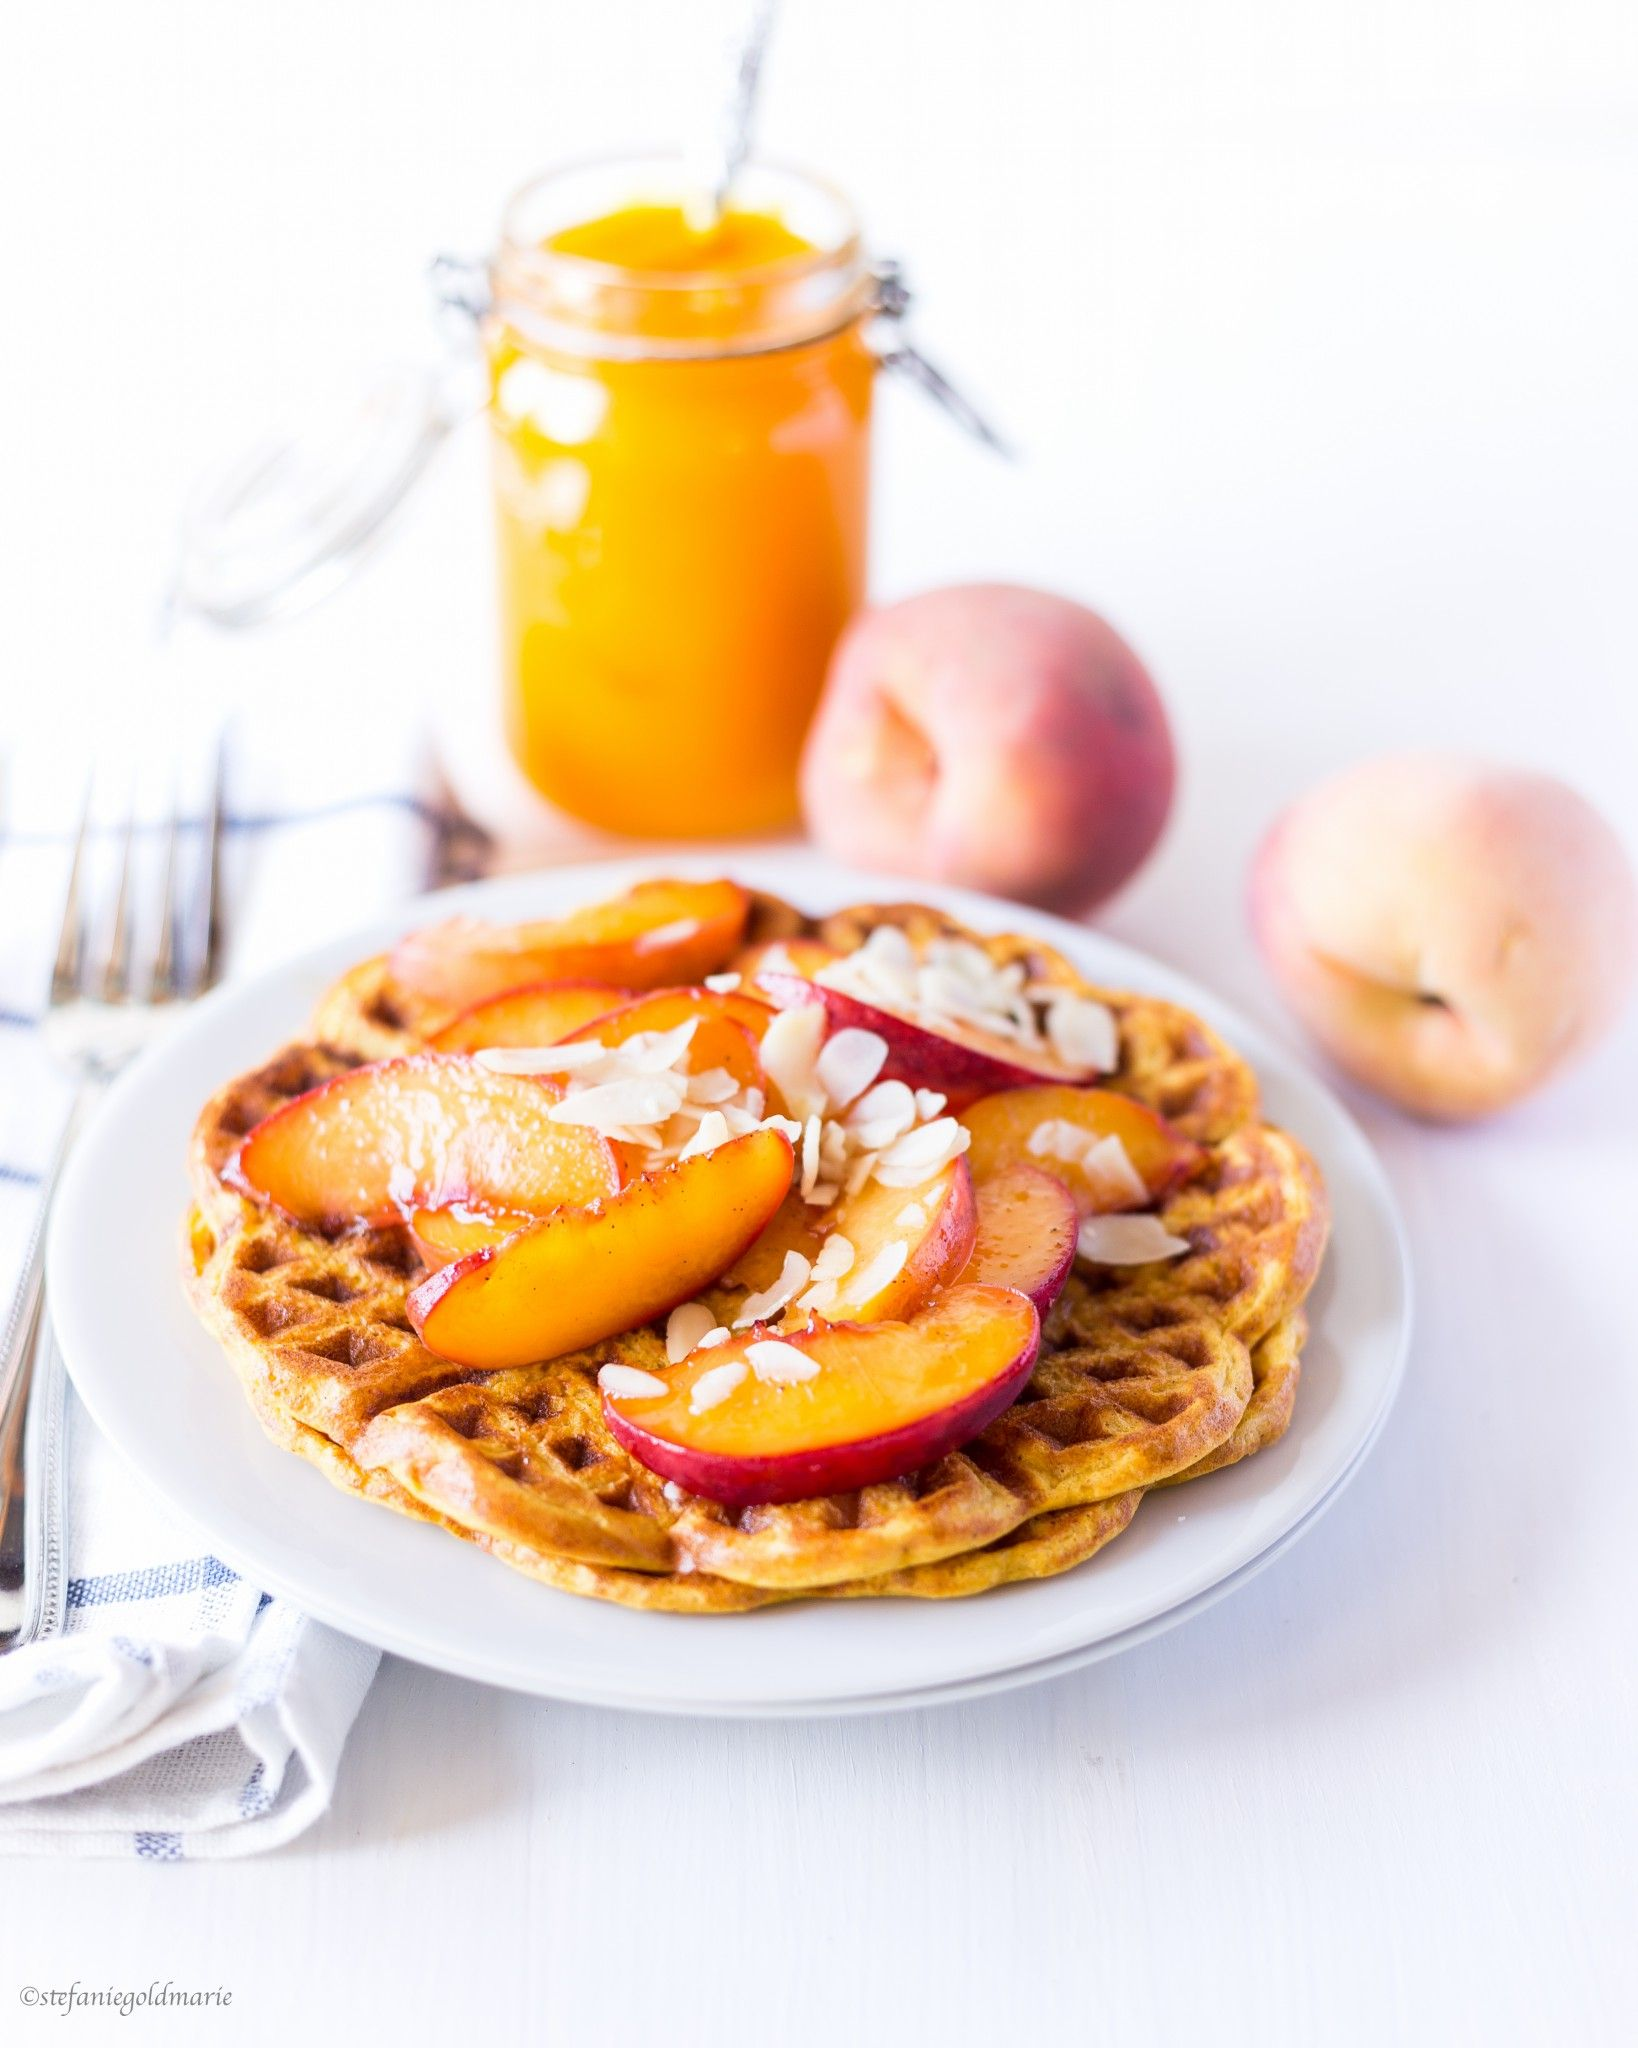 Delicious Pumpkin Spiced Waffles with caramelized Peaches. Healthy & Sugar Free